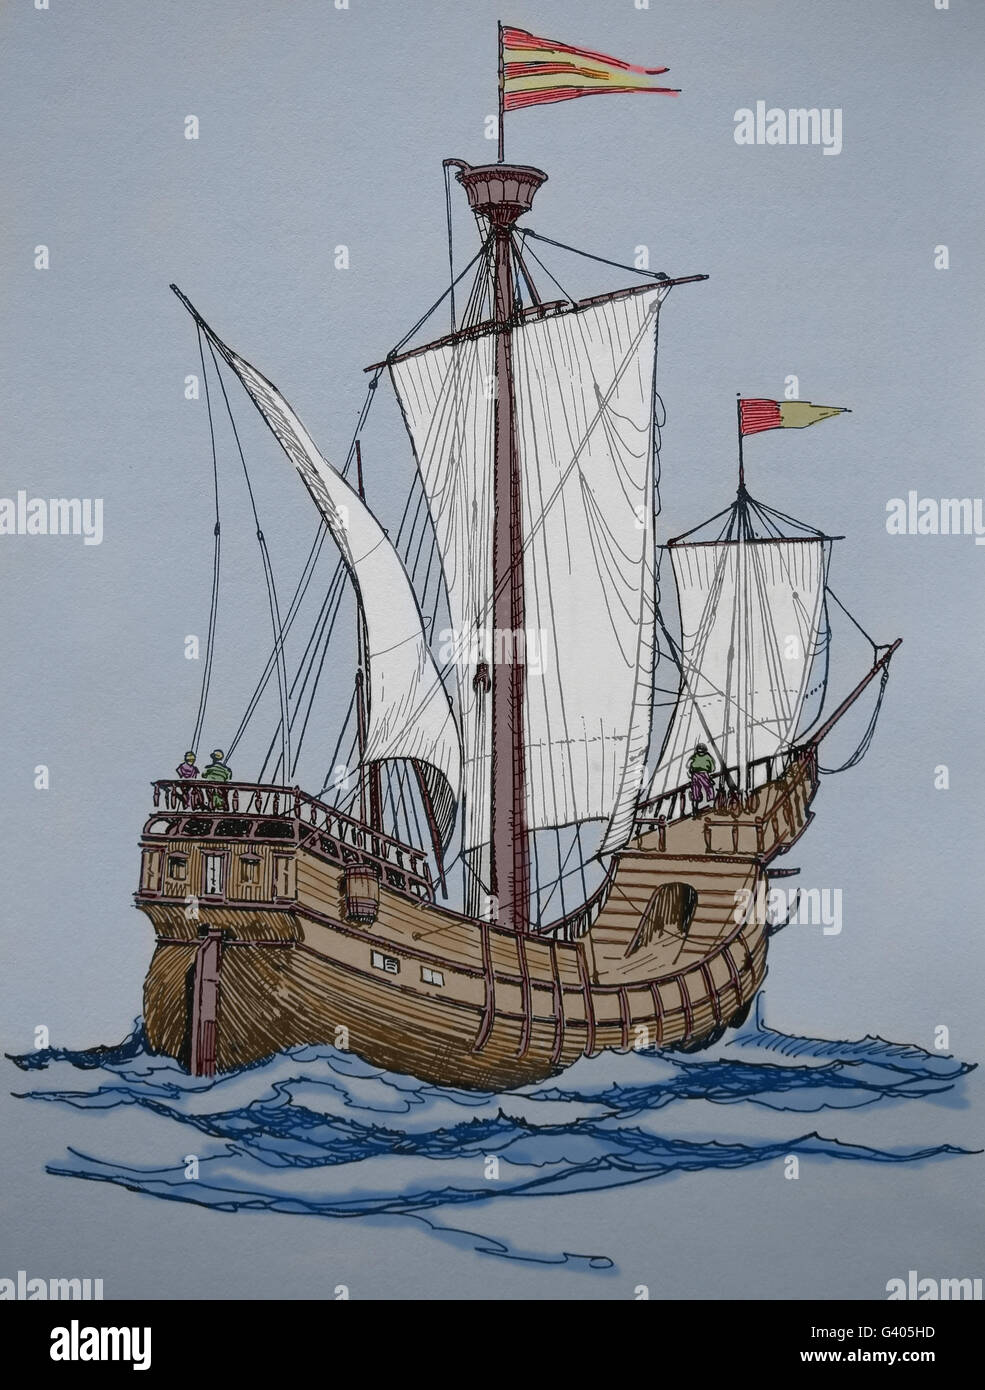 Modern Age. Late 16th century ship. Engraving, 19th century. Color. - Stock Image